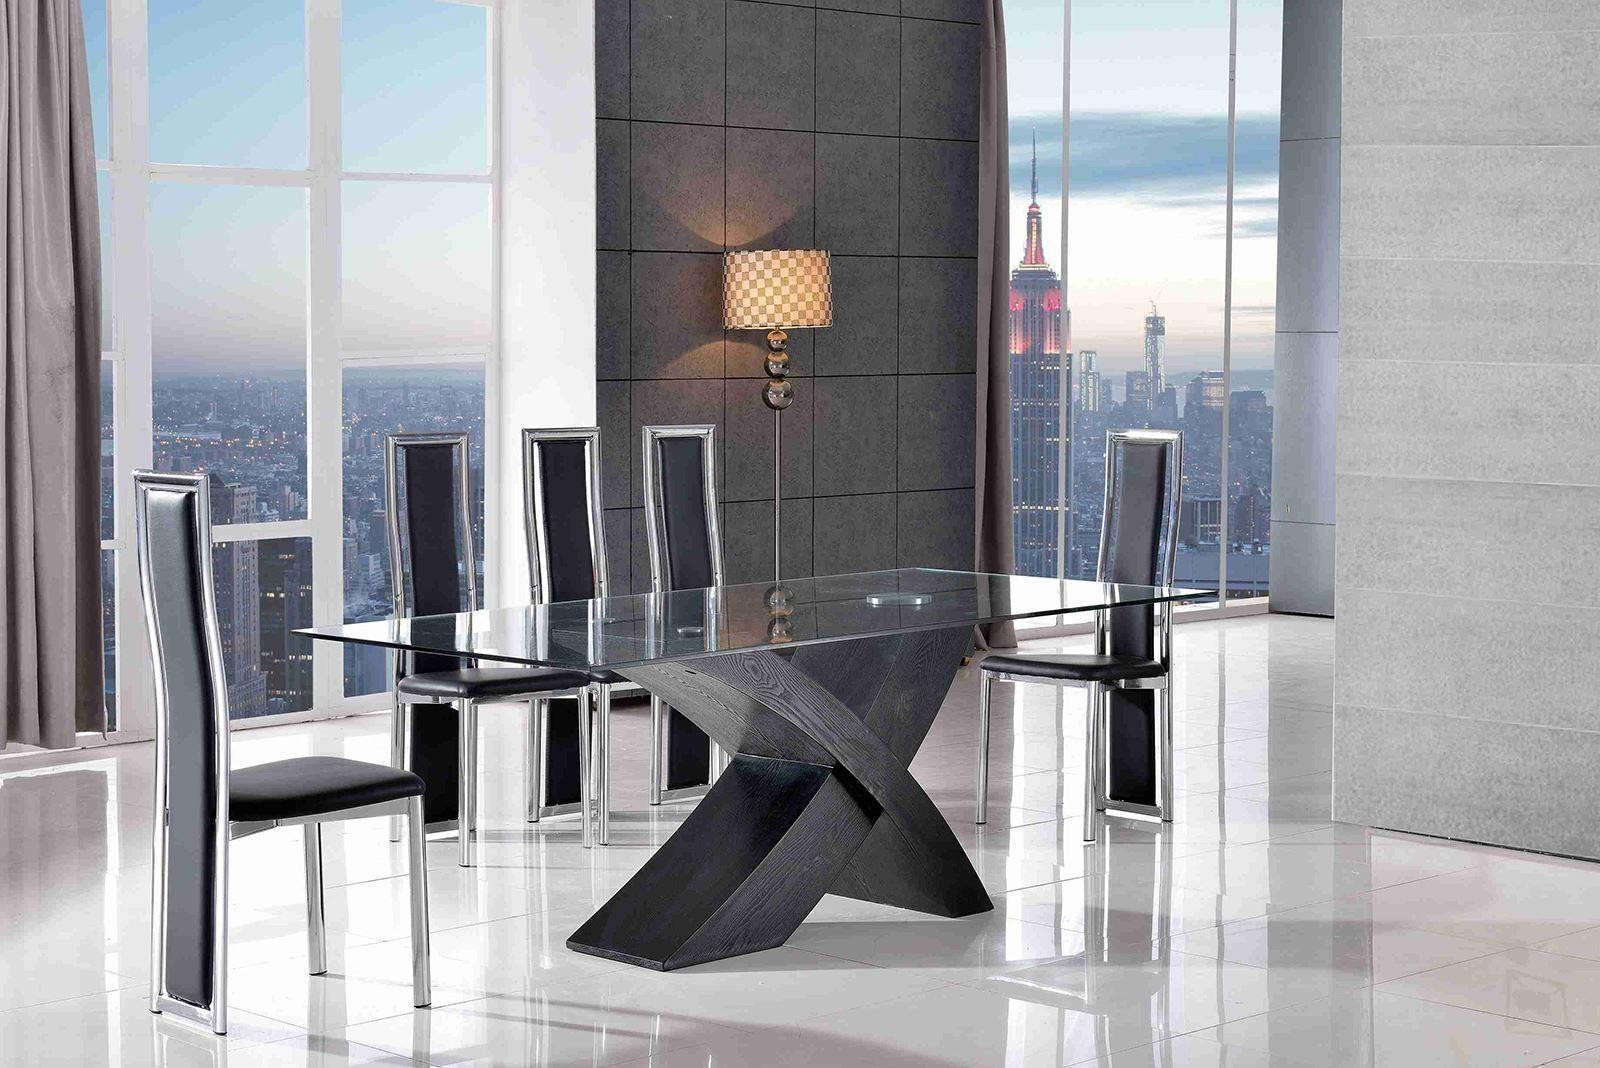 Valencia Black 200cm Wood and Glass Dining Table with 8 Elsa Designer Dining Chairs [Black]